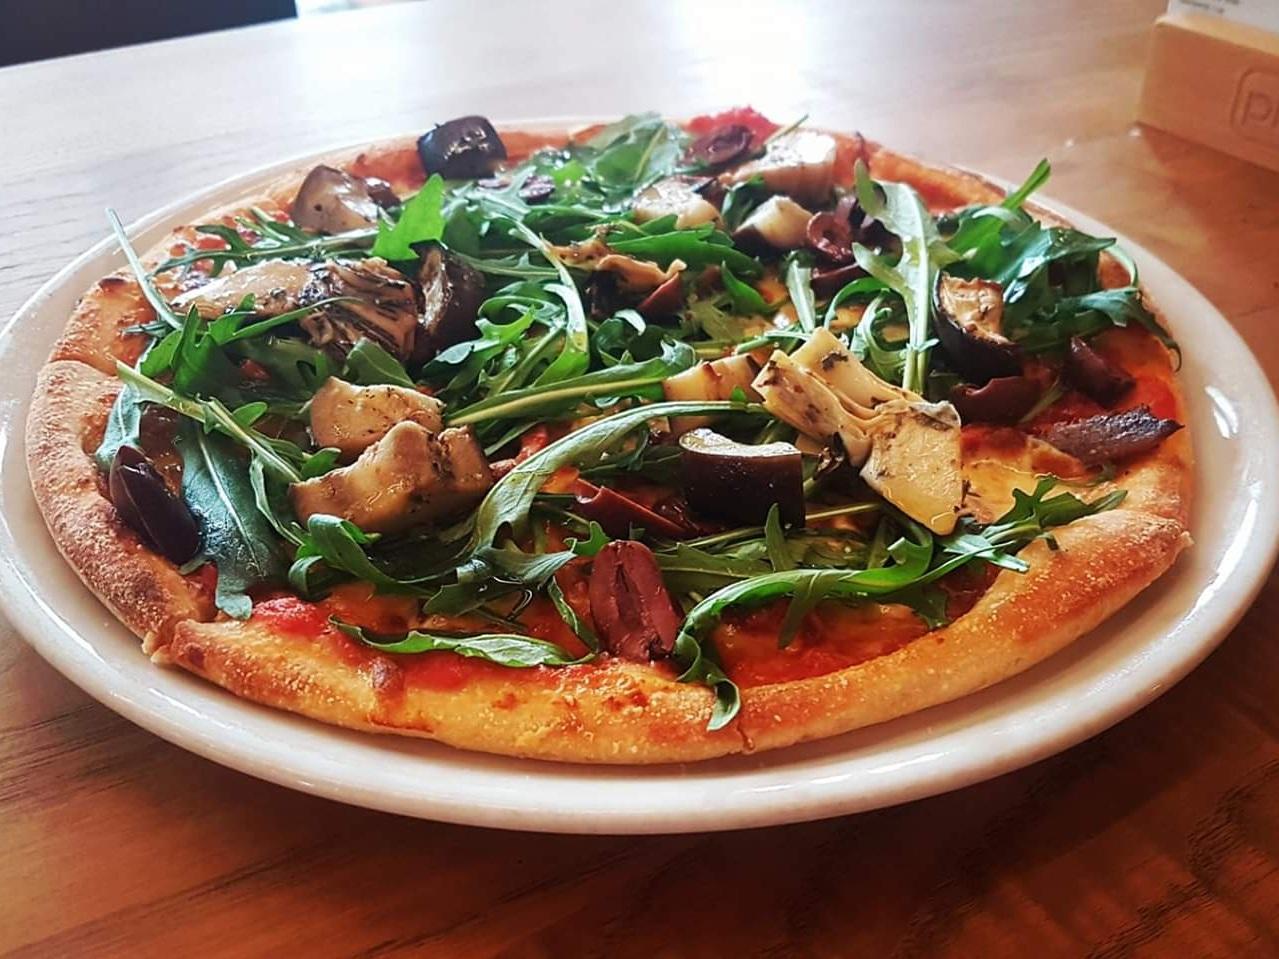 Monday - 2 for 1 Pizzas - Dine in only. from 5pm. Buy any two pizzas and enjoy one on us. Including our pizza of the month special. Pizzas range from $17 - $21. The lowered priced pizza is on us!